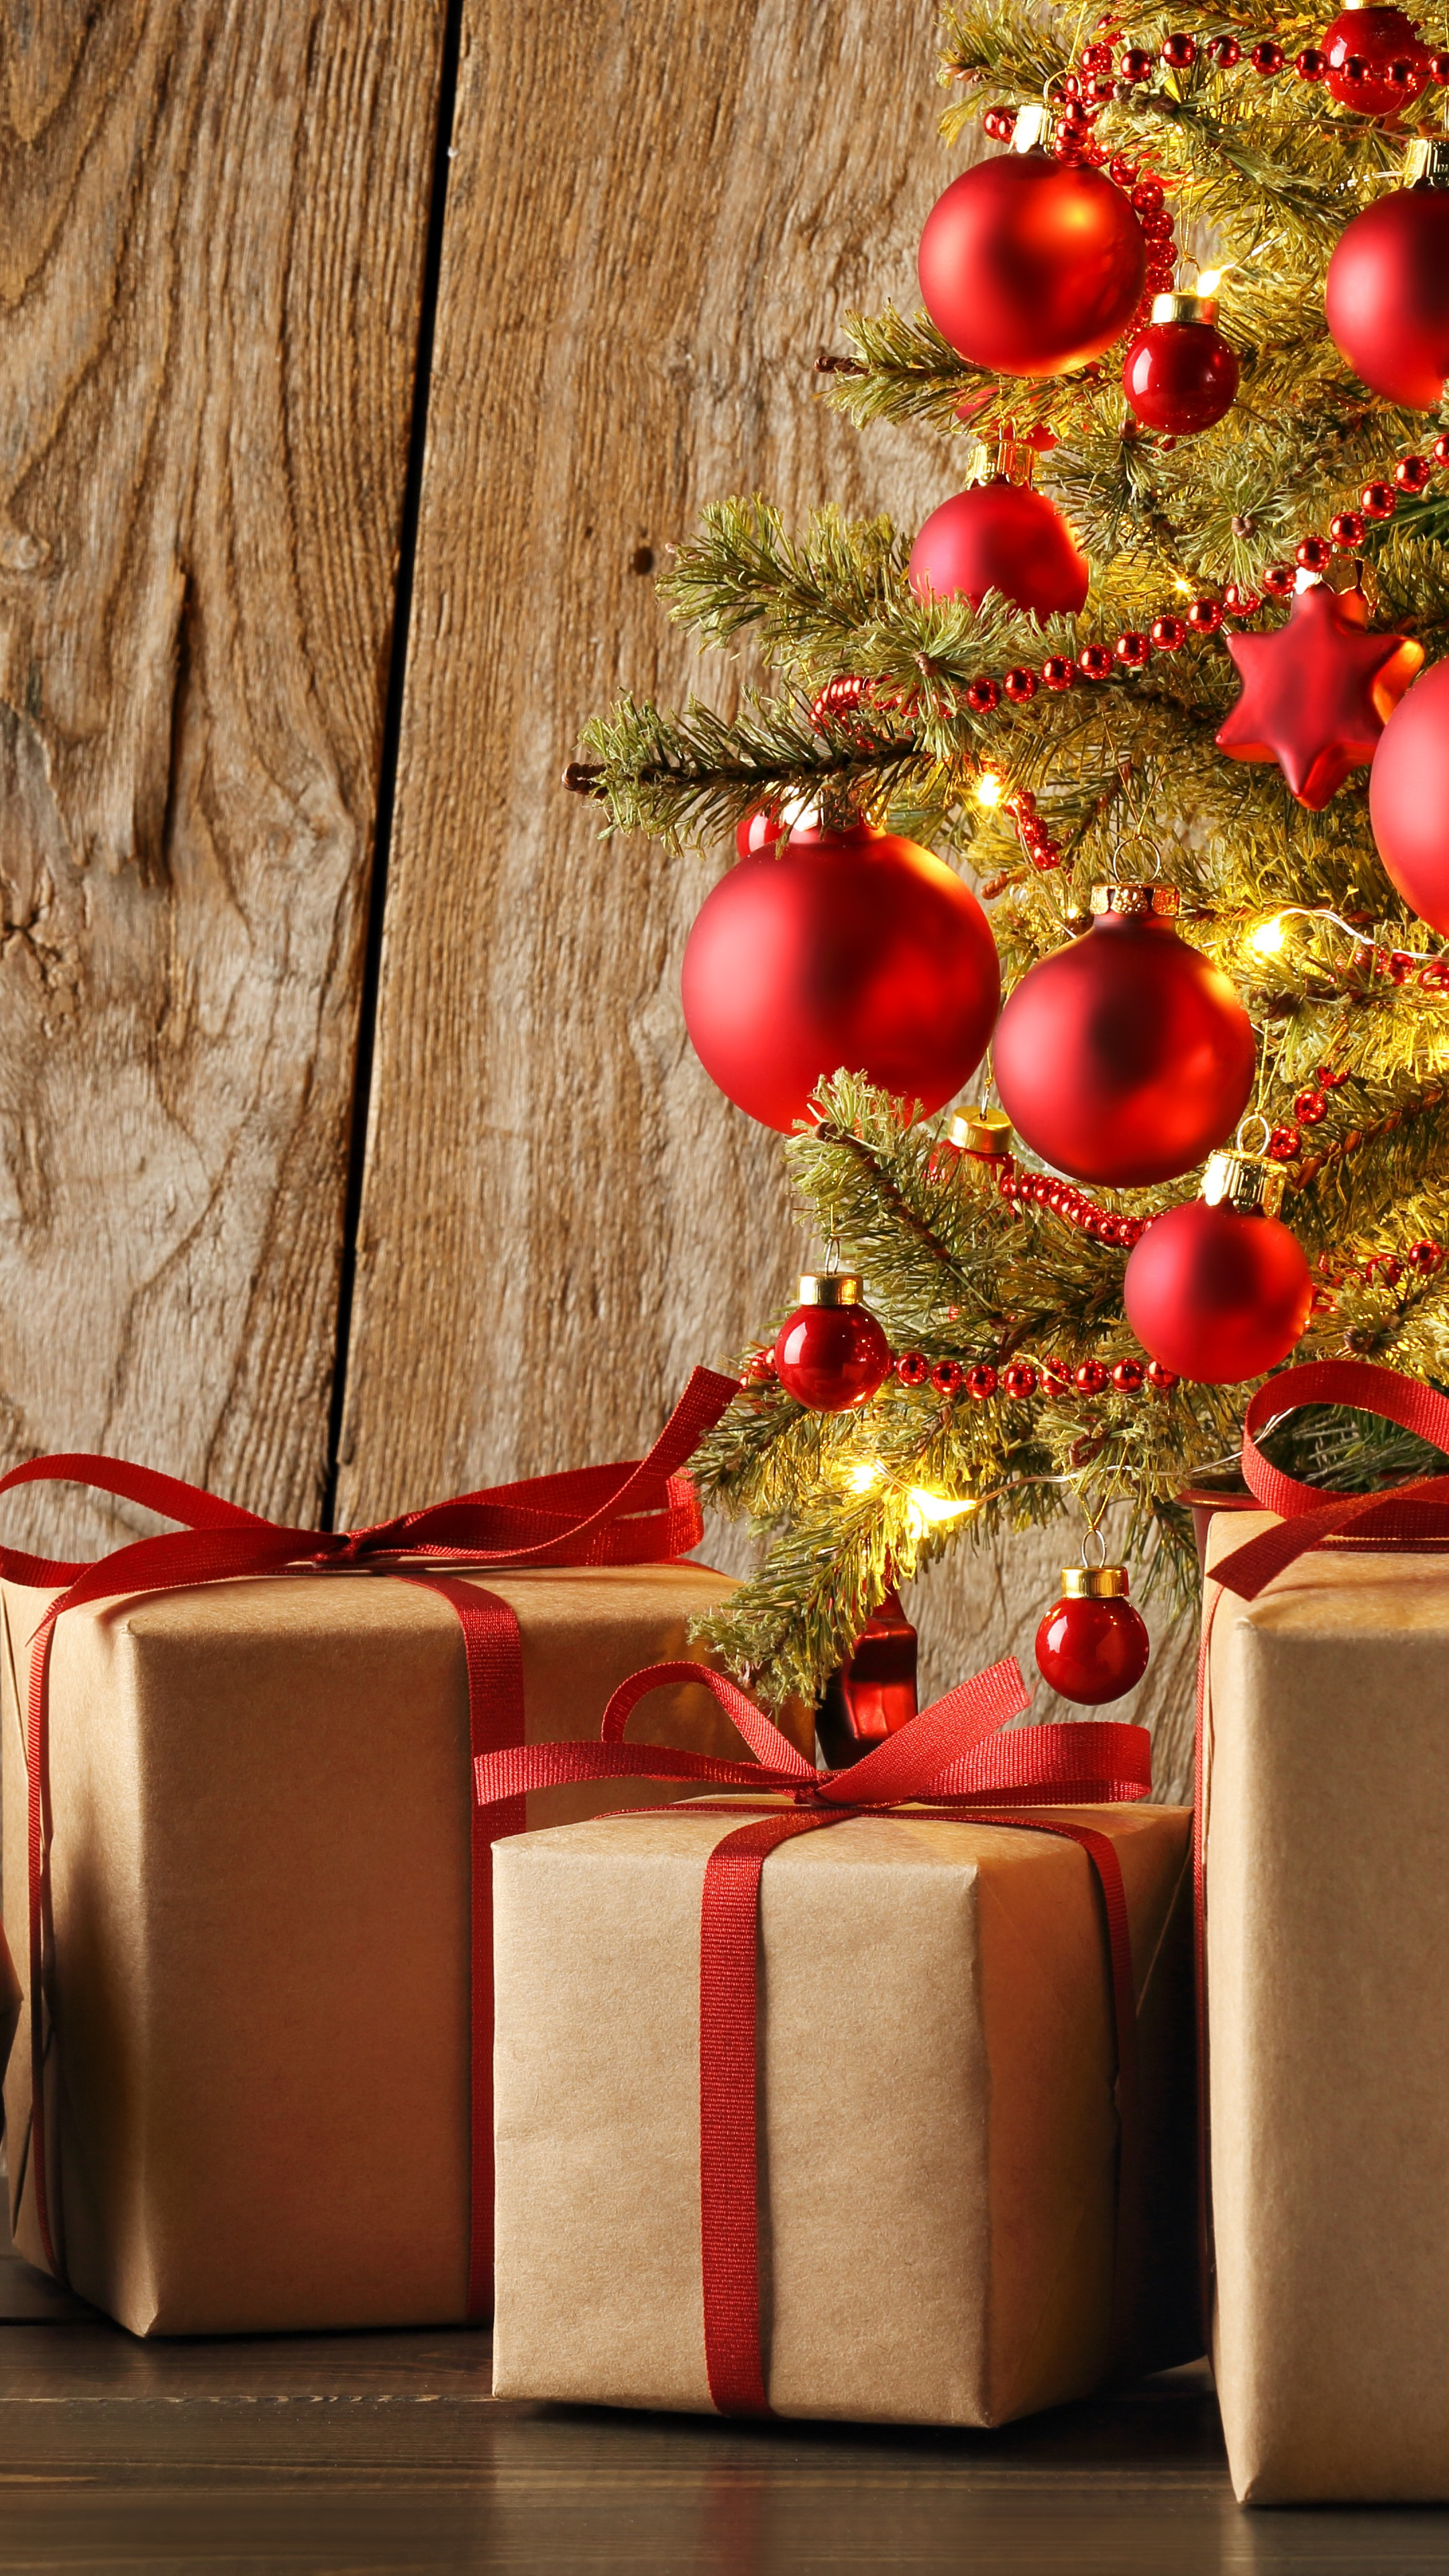 Wallpaper Christmas New Year Gifts 4k Holidays 16689